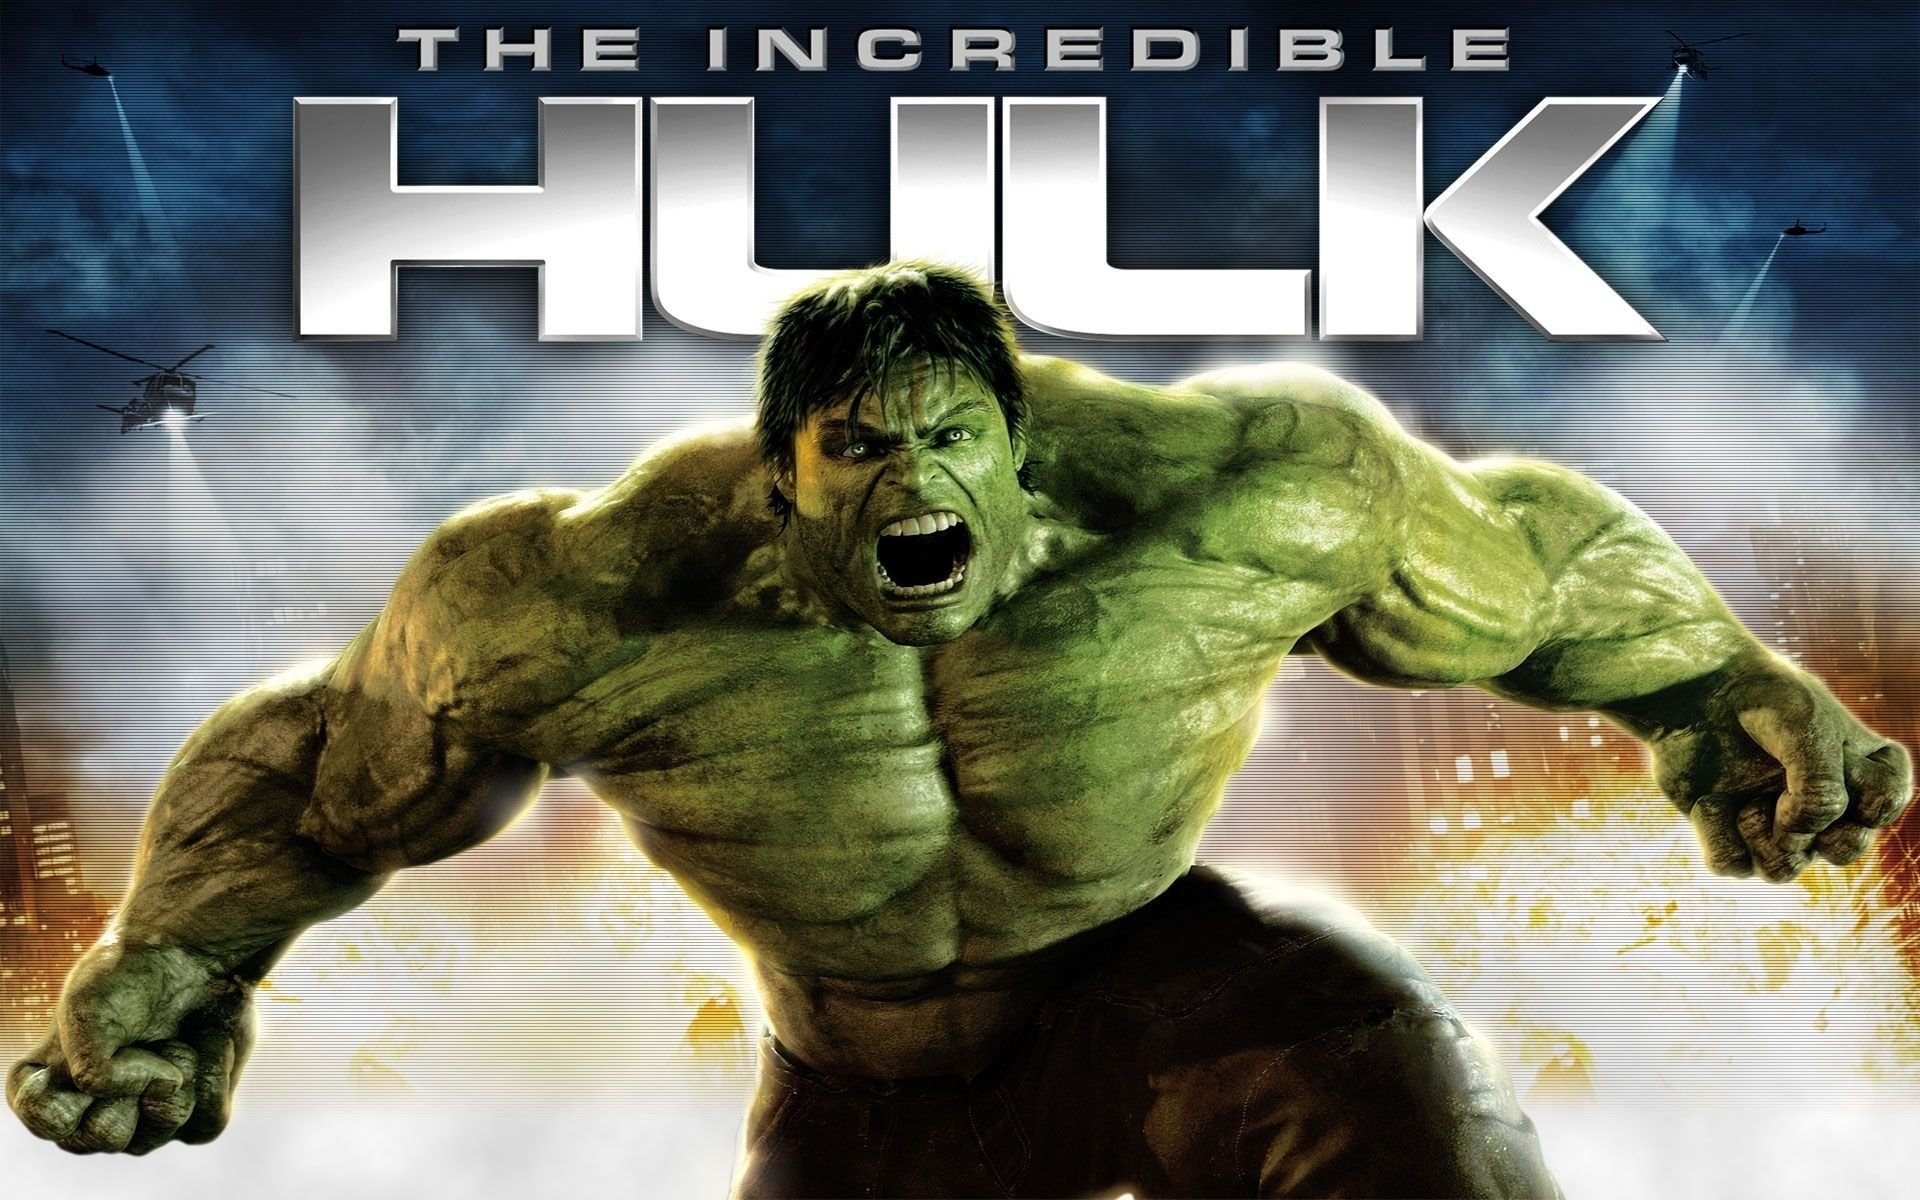 10 New The Incredible Hulk Wallpaper FULL HD 1920×1080 For PC Desktop